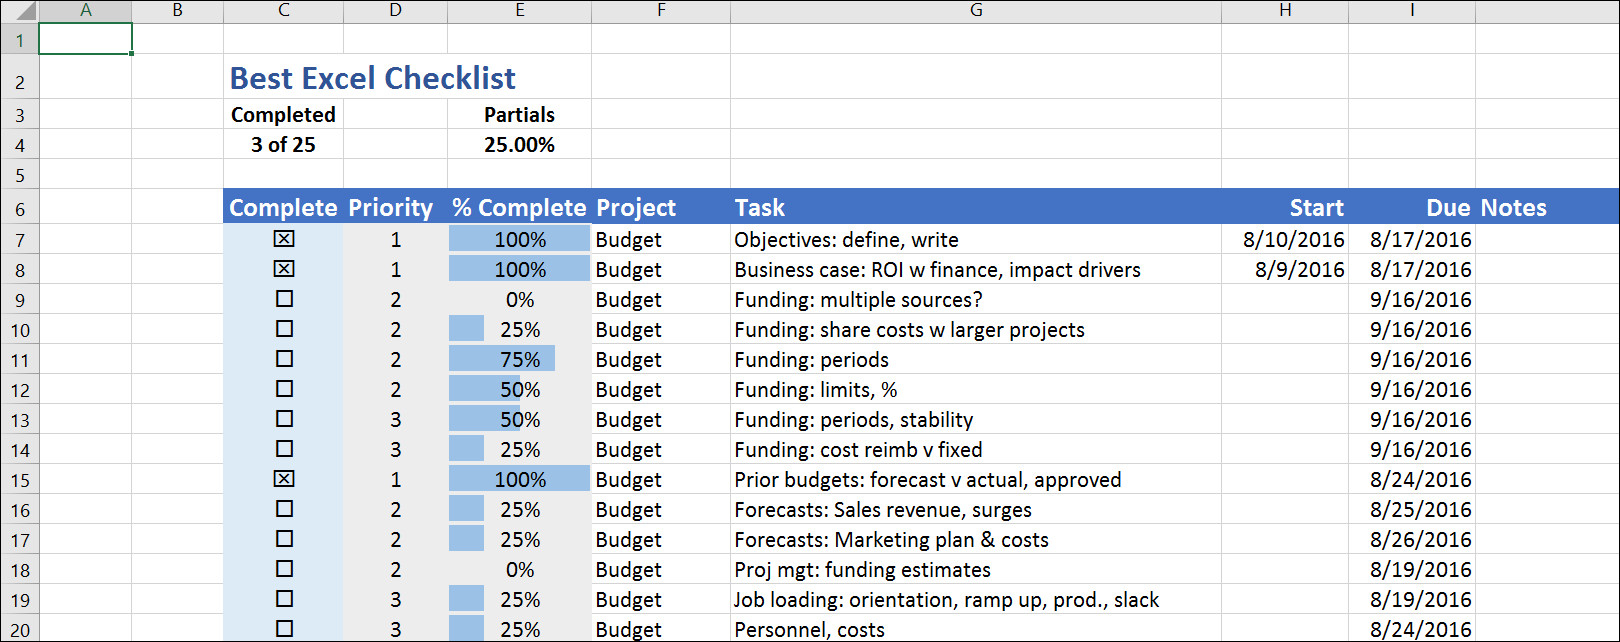 Construction Project Cost Tracking Spreadsheet Intended For Construction Project Cost Tracking Spreadsheet Examples  Askoverflow